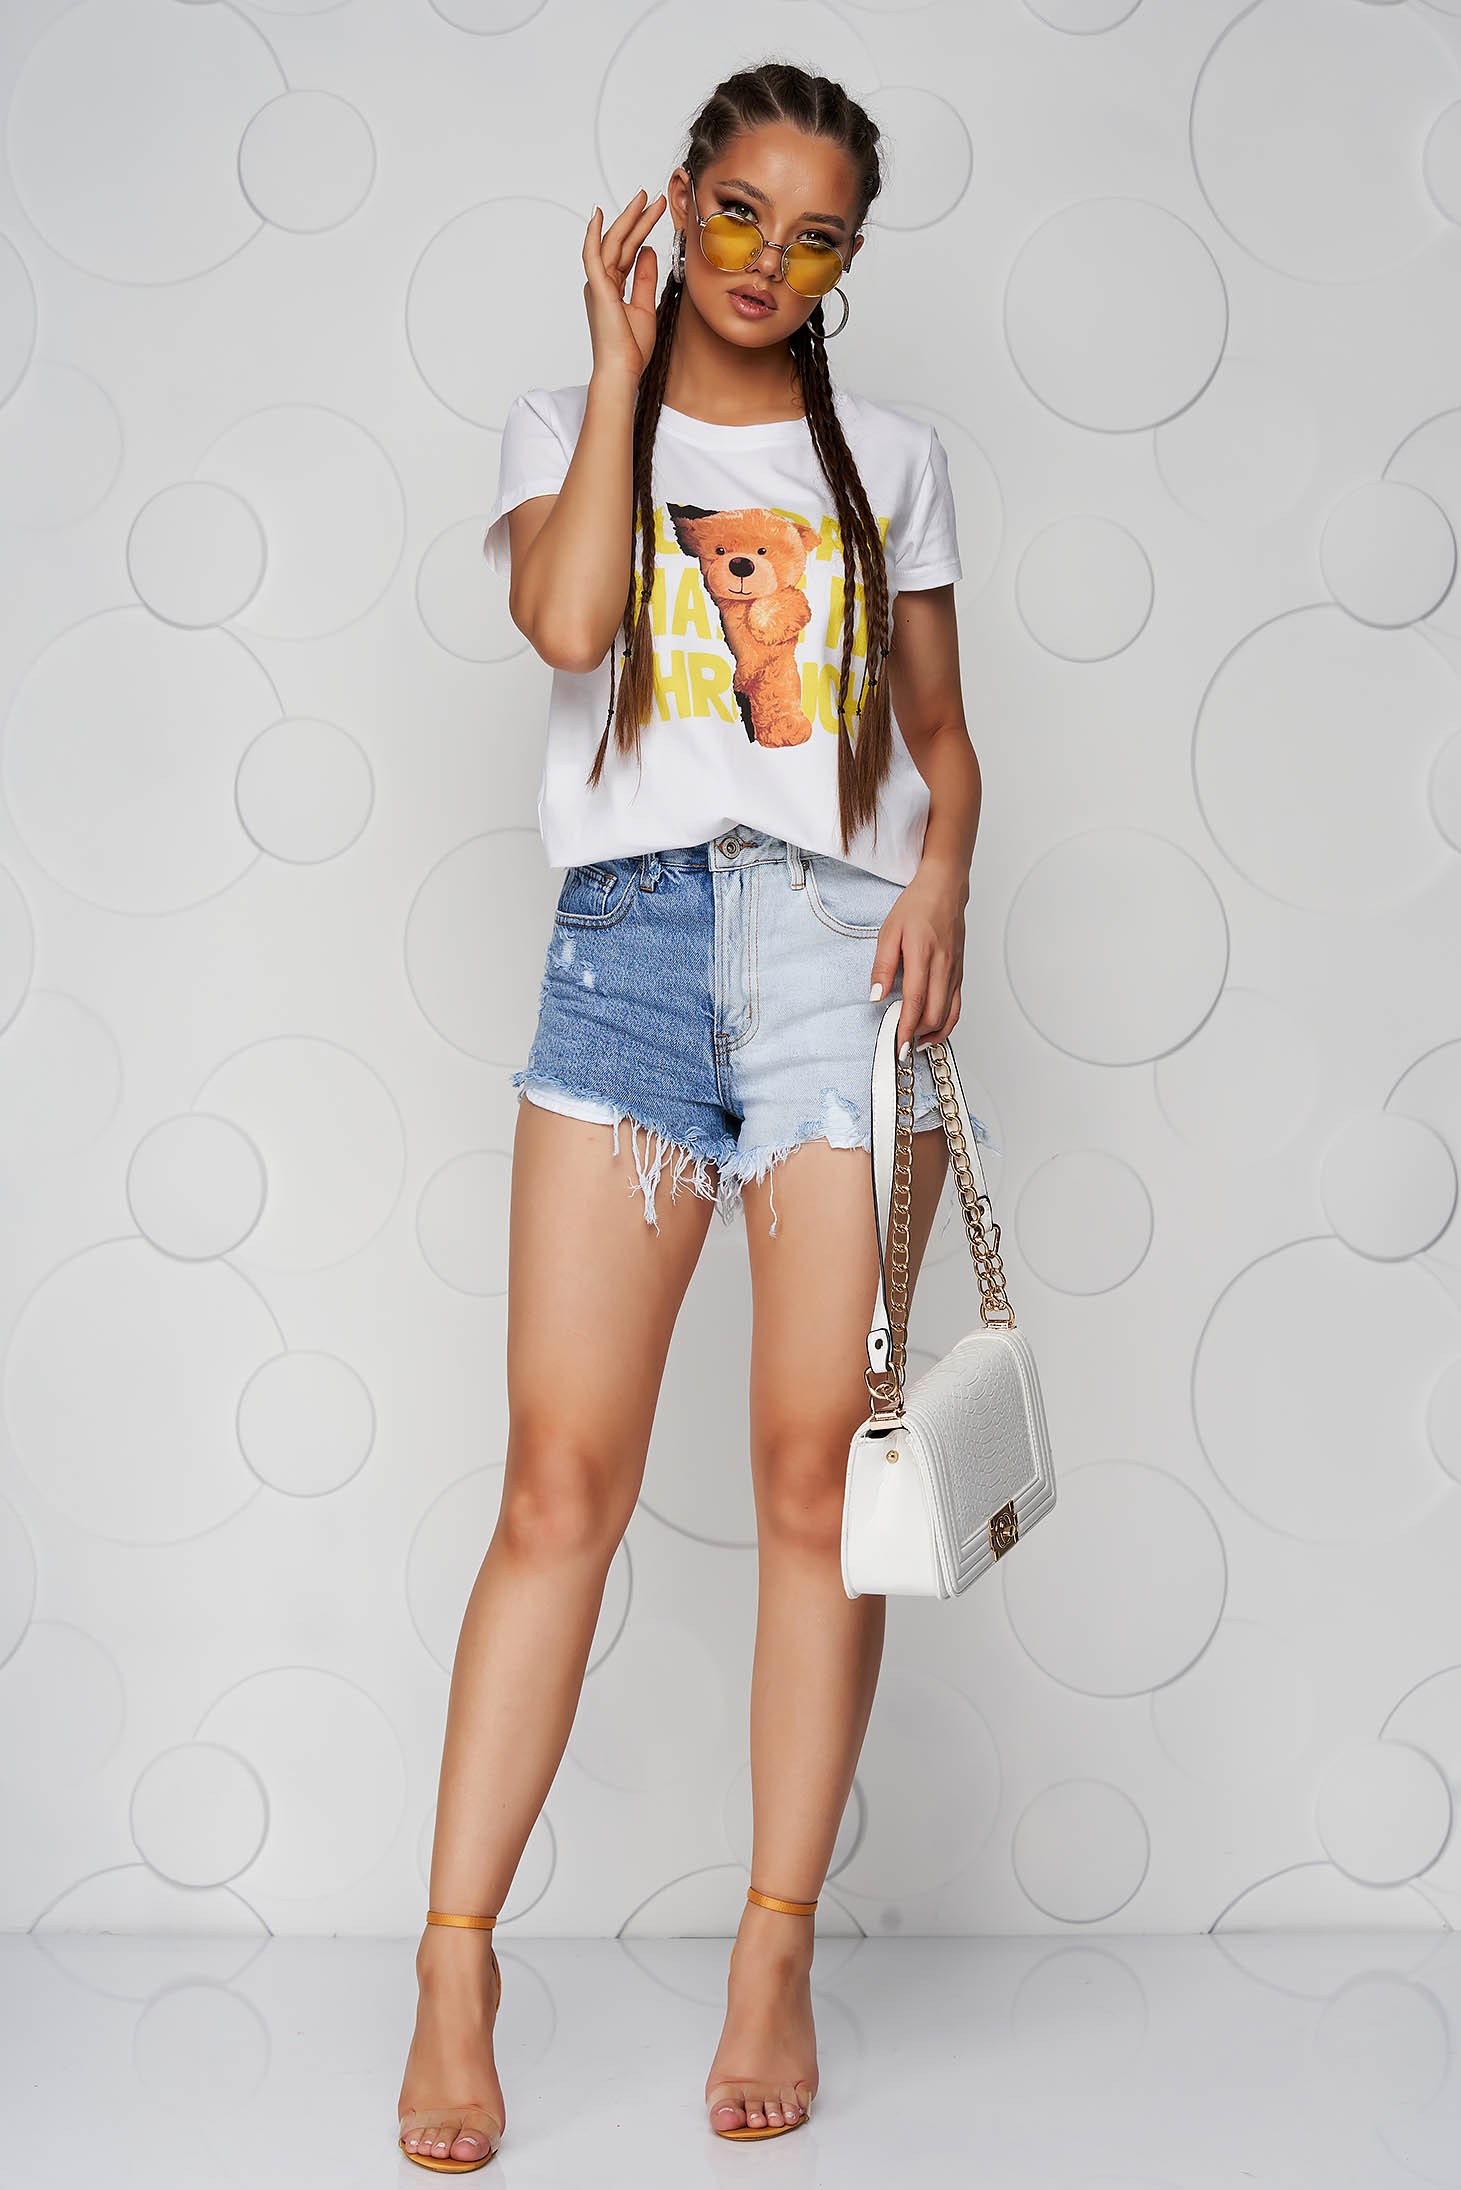 Yellow t-shirt cotton loose fit with graphic details with rounded cleavage